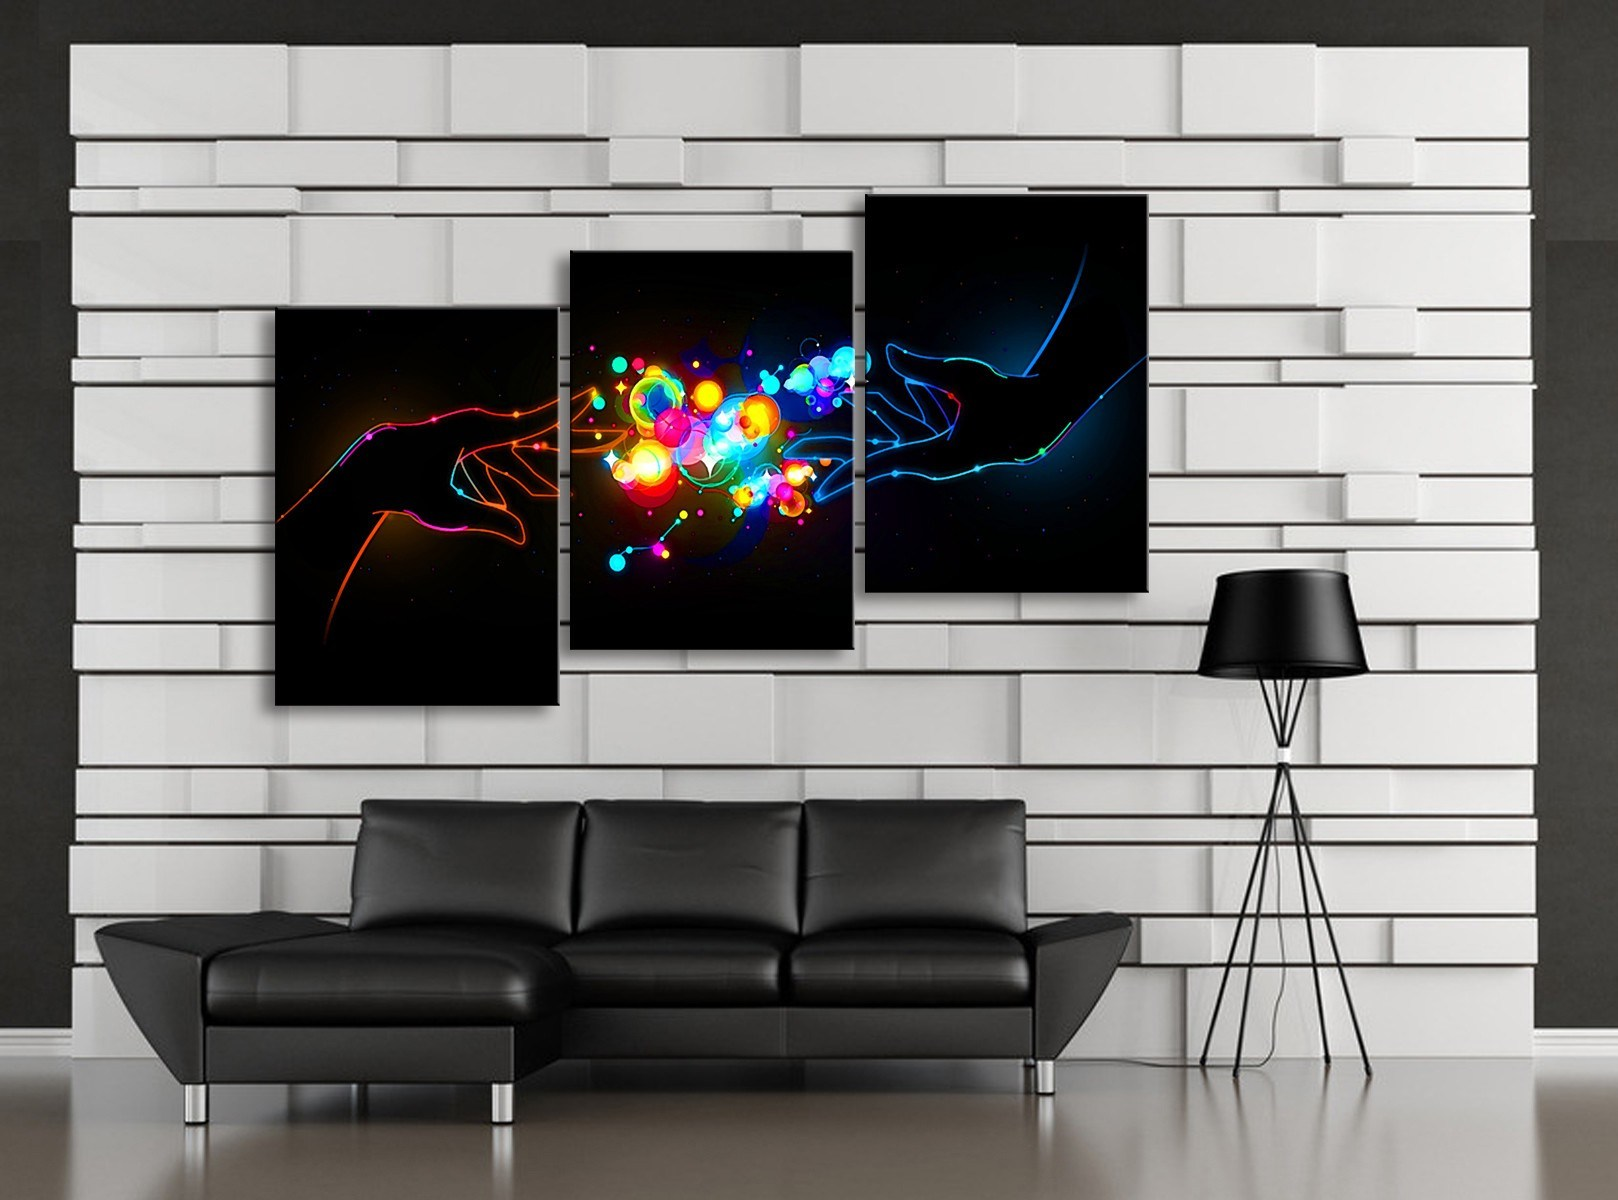 Custom Order Wholesale Stretched Canvas Prints, Canvas Wall Art Wholesale